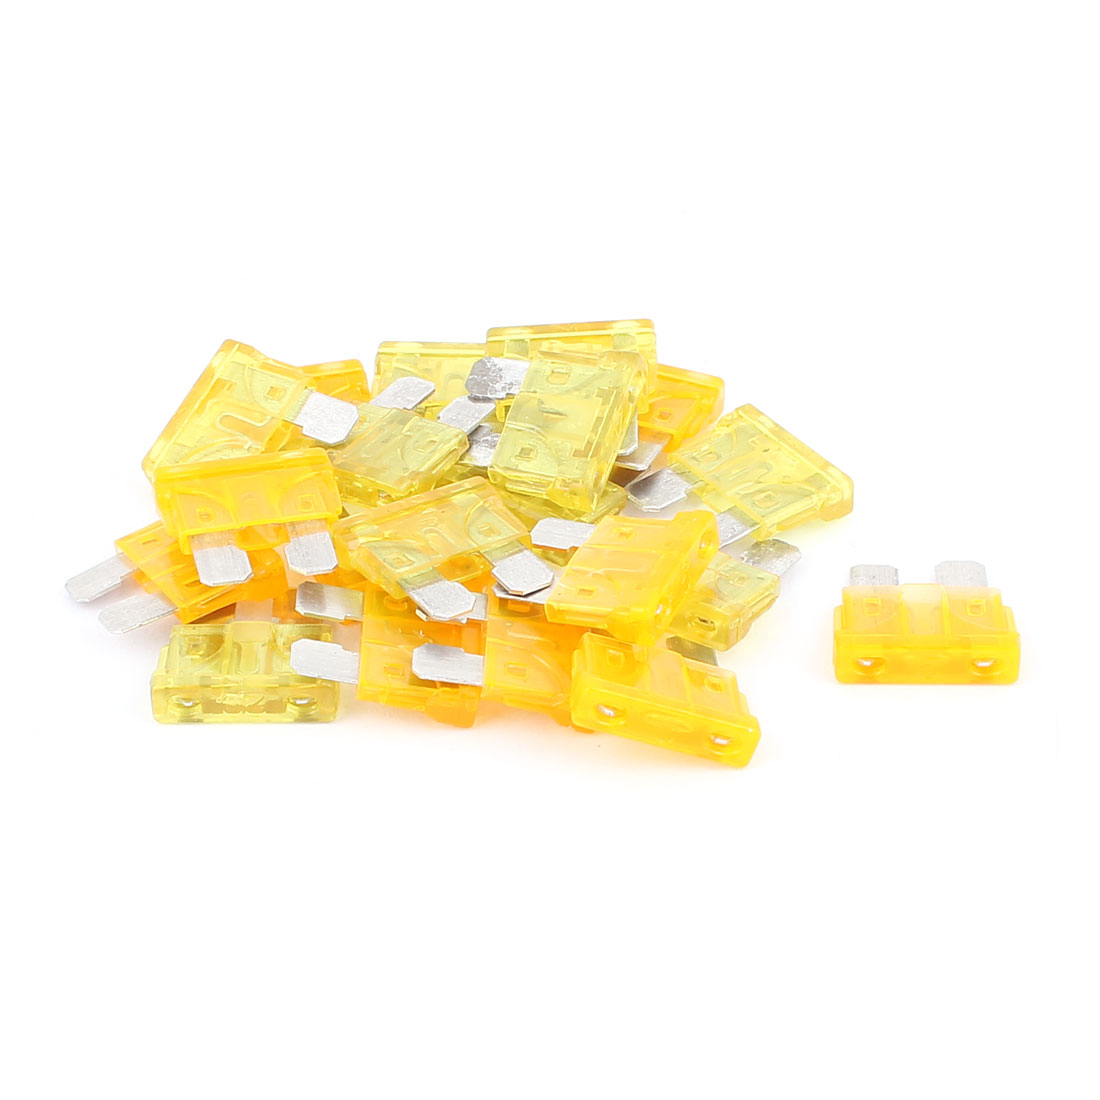 20pcs Yellow Orange 20A 5A Plastic Case Mini Blade Fuse for Auto Car Caravan Motorcycle SUV